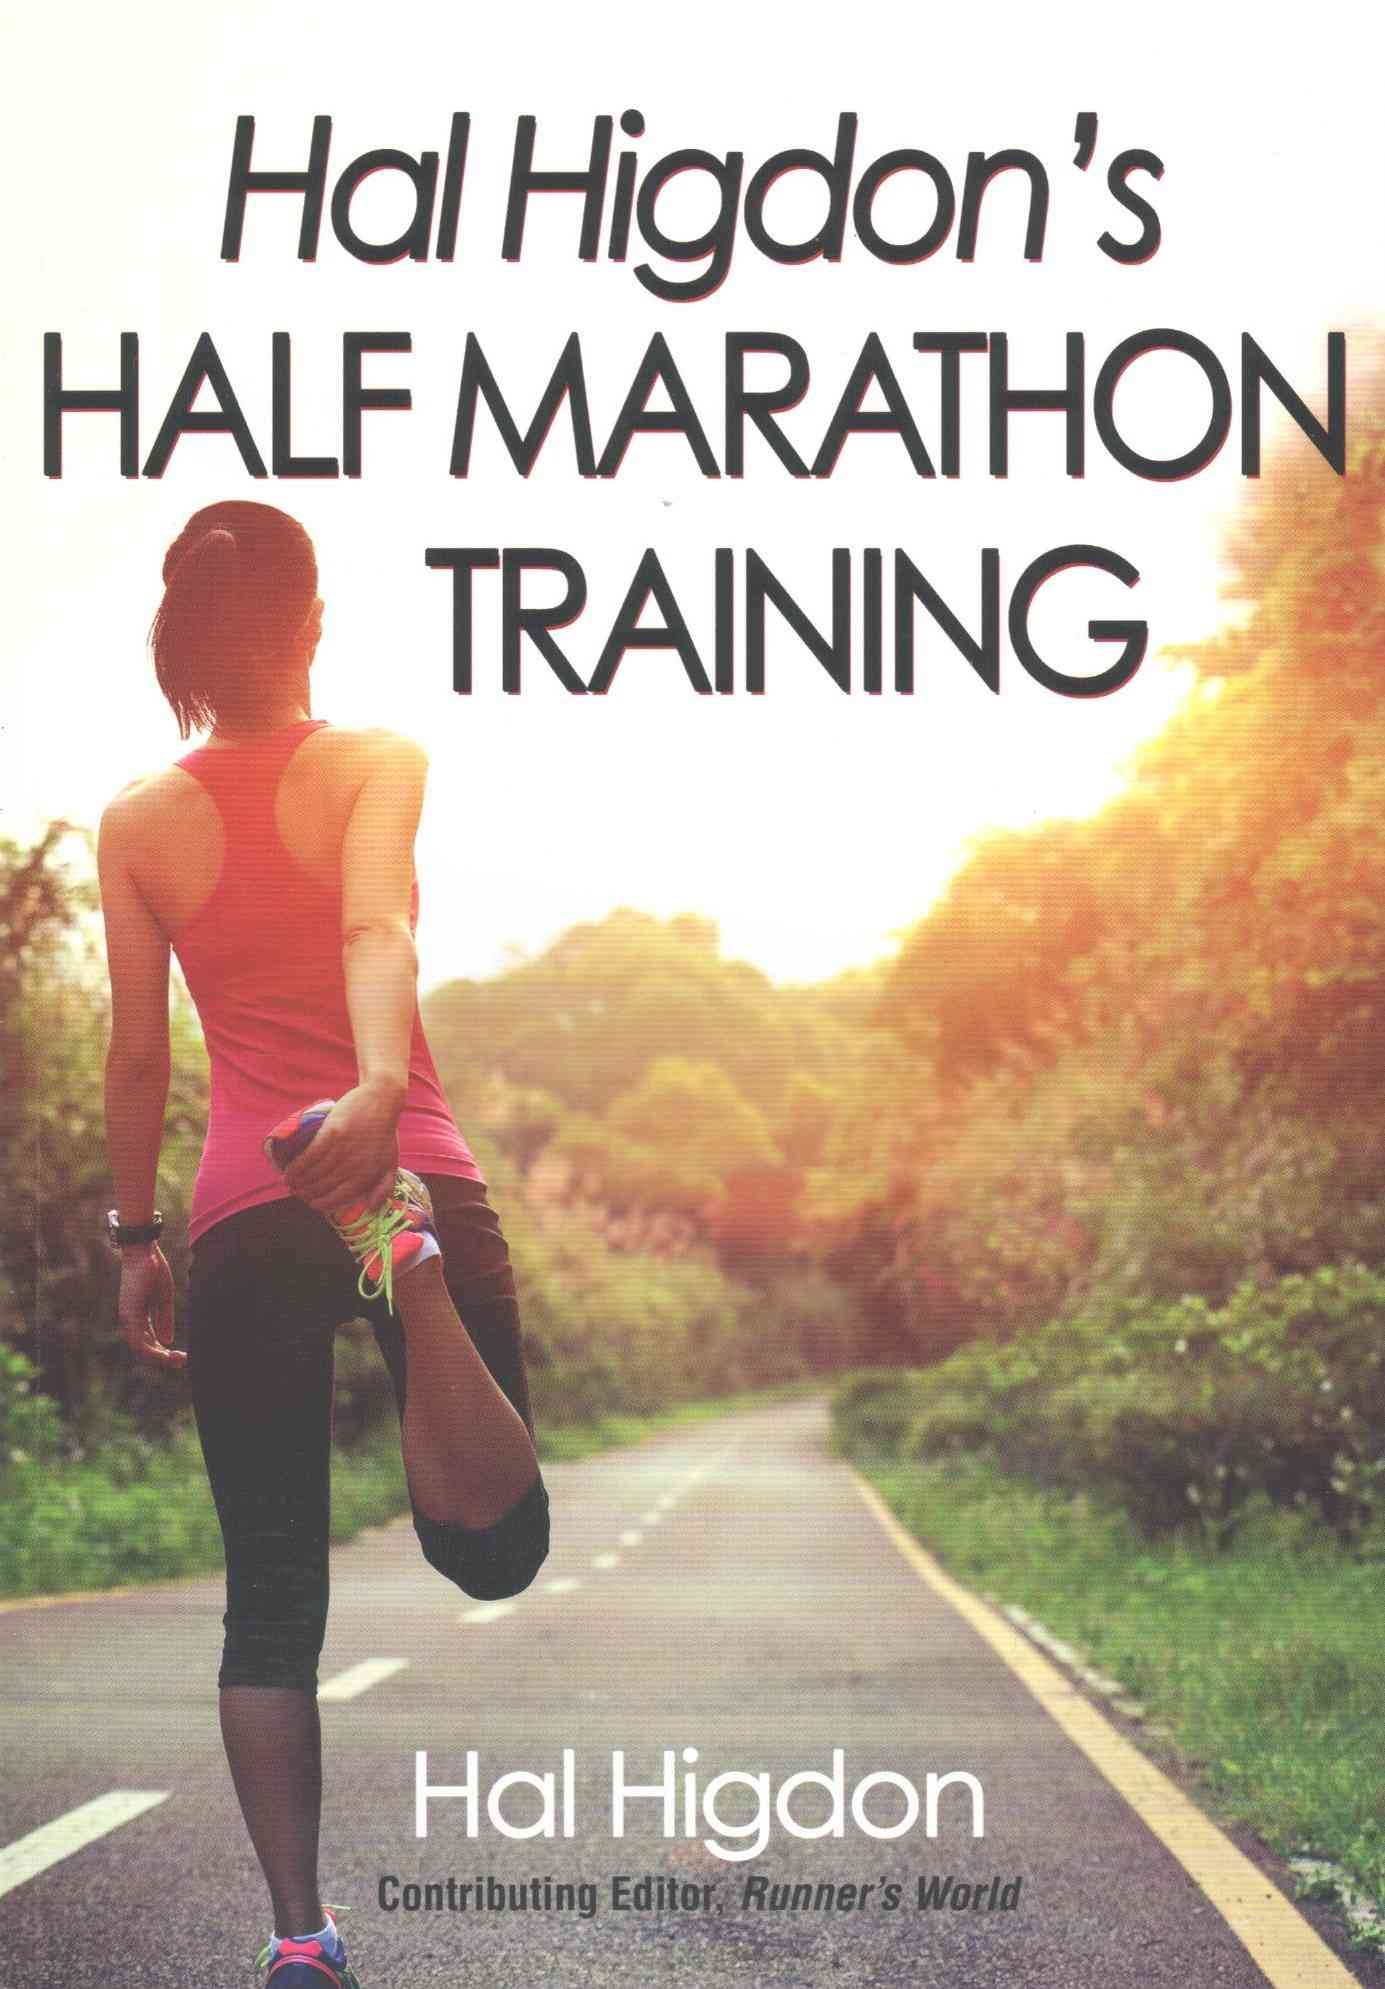 Hal higdon and sex before a marathon